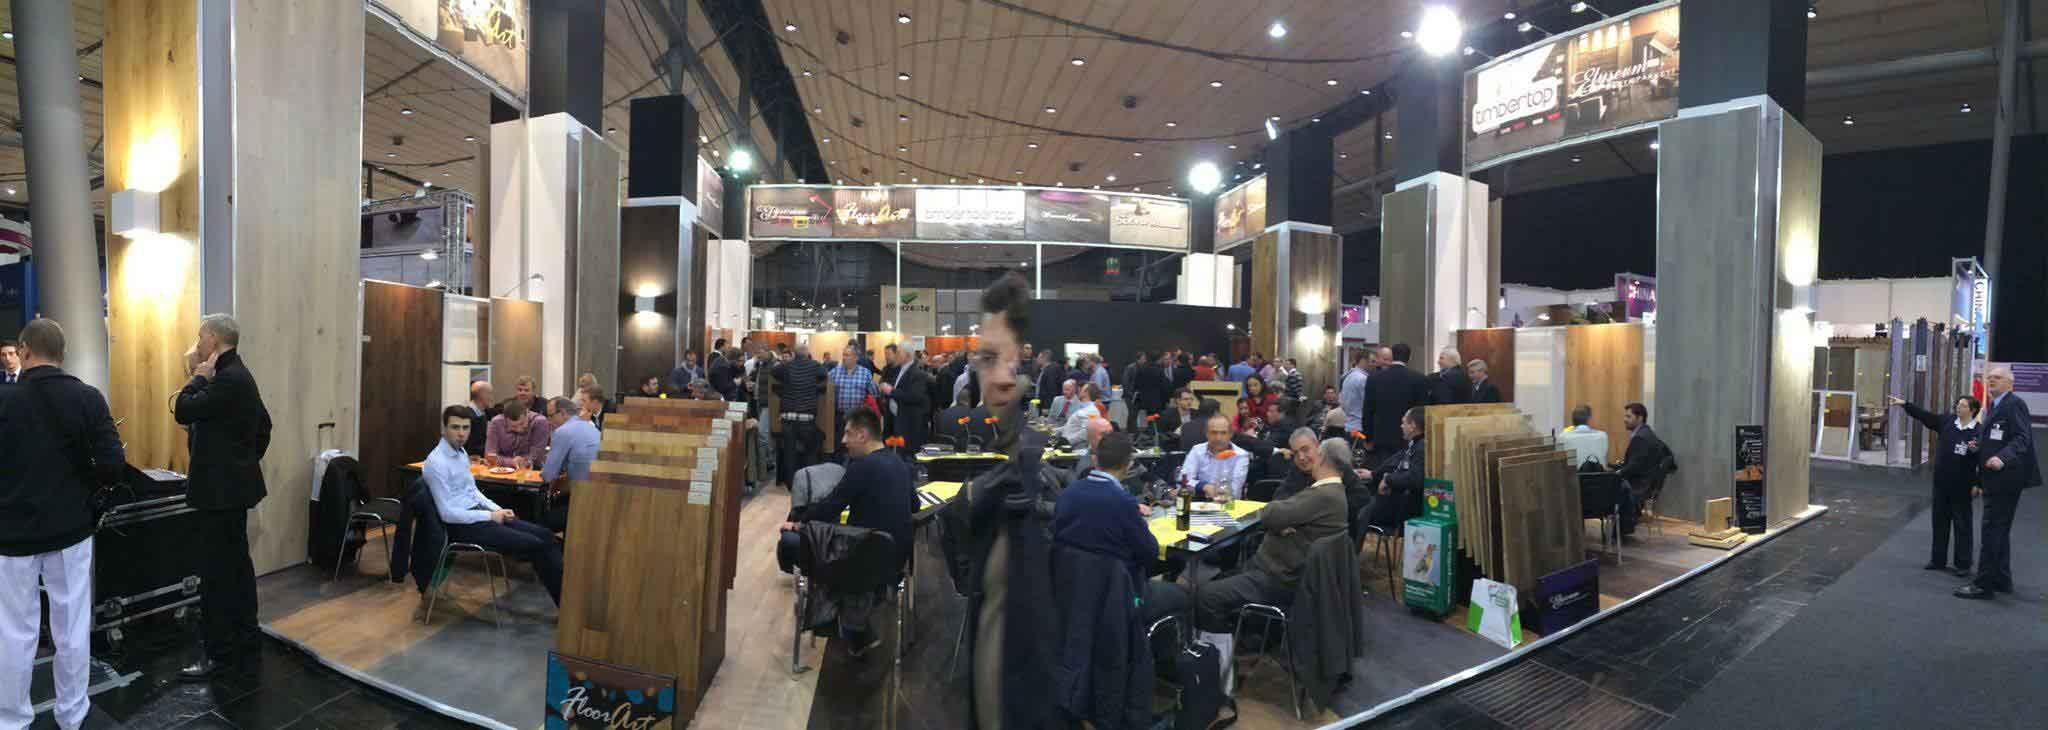 Domotex Hannover 2016 – Standparty